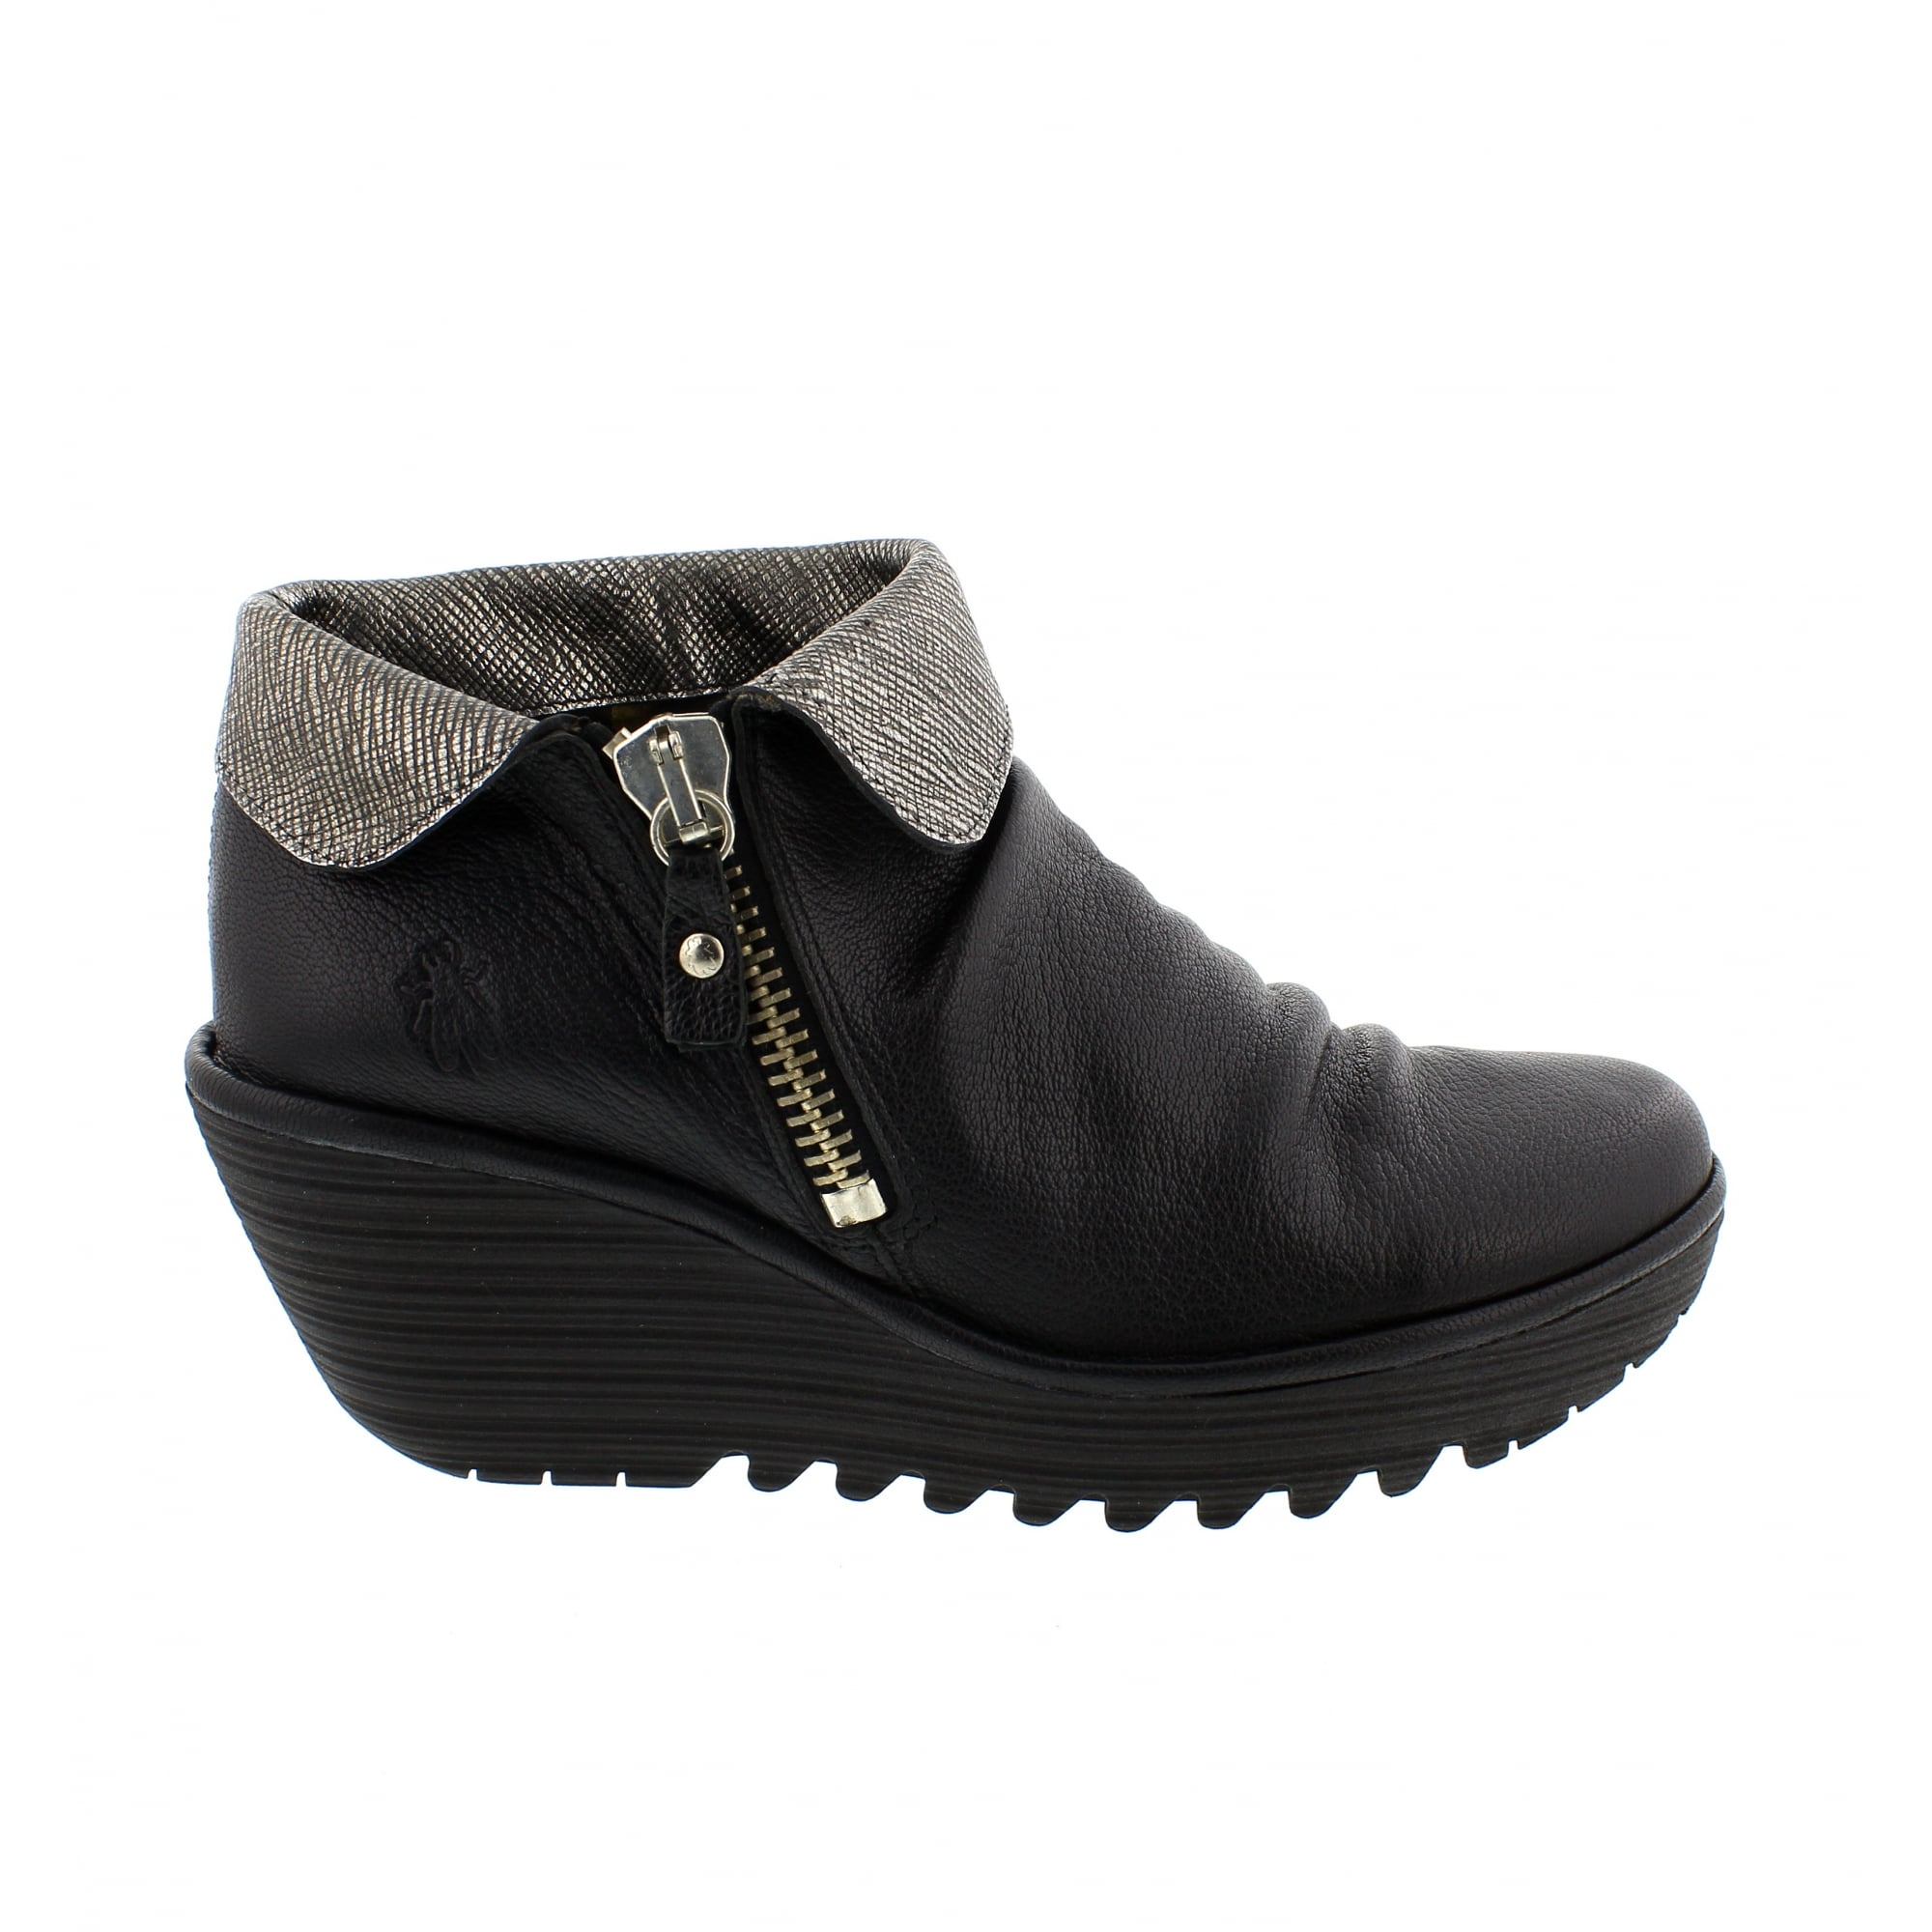 best place discount new list Fly London Yoxi Ankle Boots Black/Pewter   Rogerson Shoes